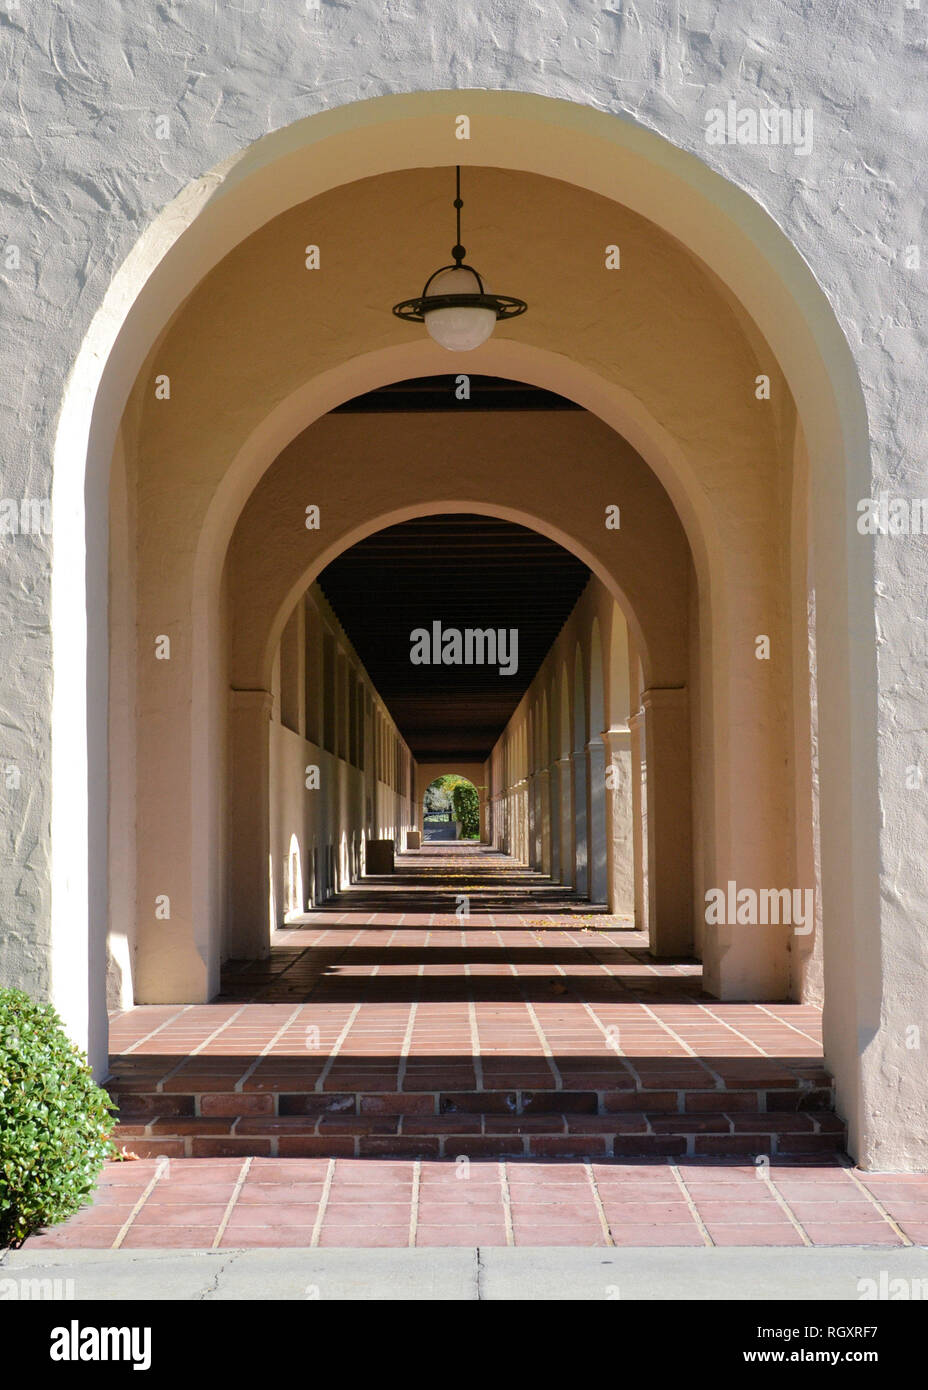 Arched walkway on the campus of the California Institute of Technology, Pasadena, California, USA; Caltech pathway with arches. - Stock Image